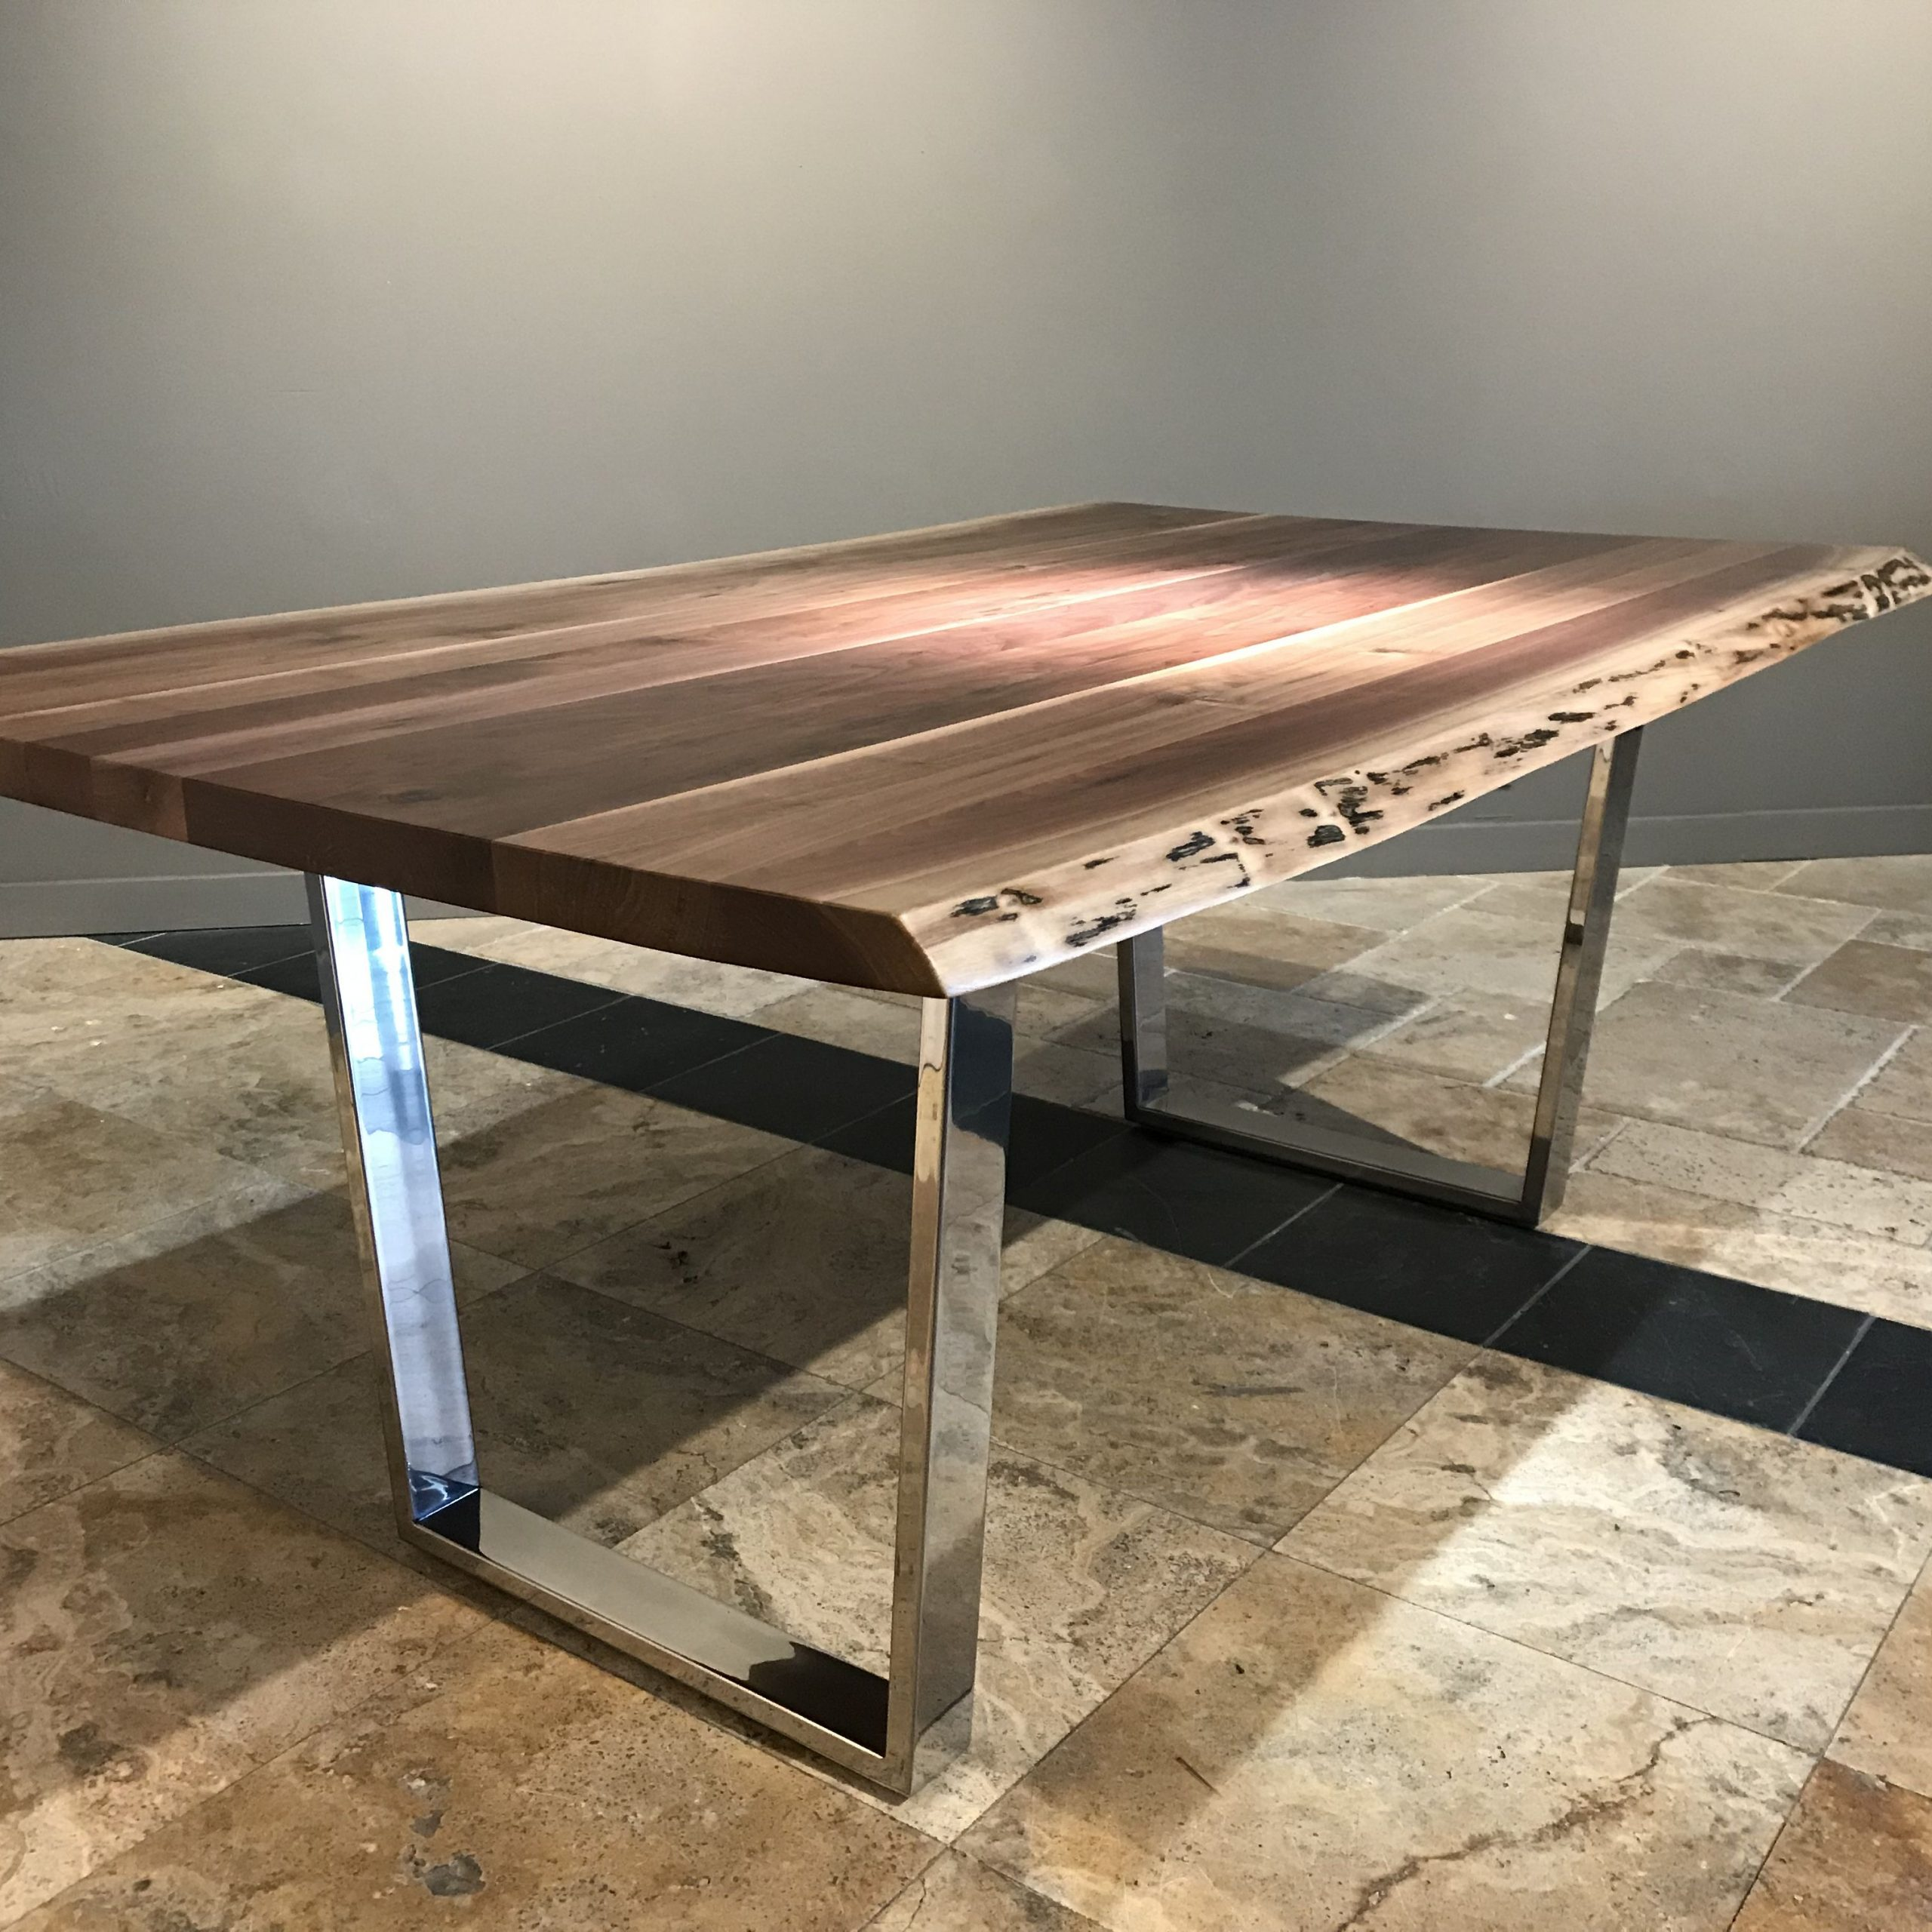 Newest Walnut Finish Live Edge Wood Contemporary Dining Tables Inside Buy A Custom Live Edge Dining Table, Made To Order From (View 14 of 25)